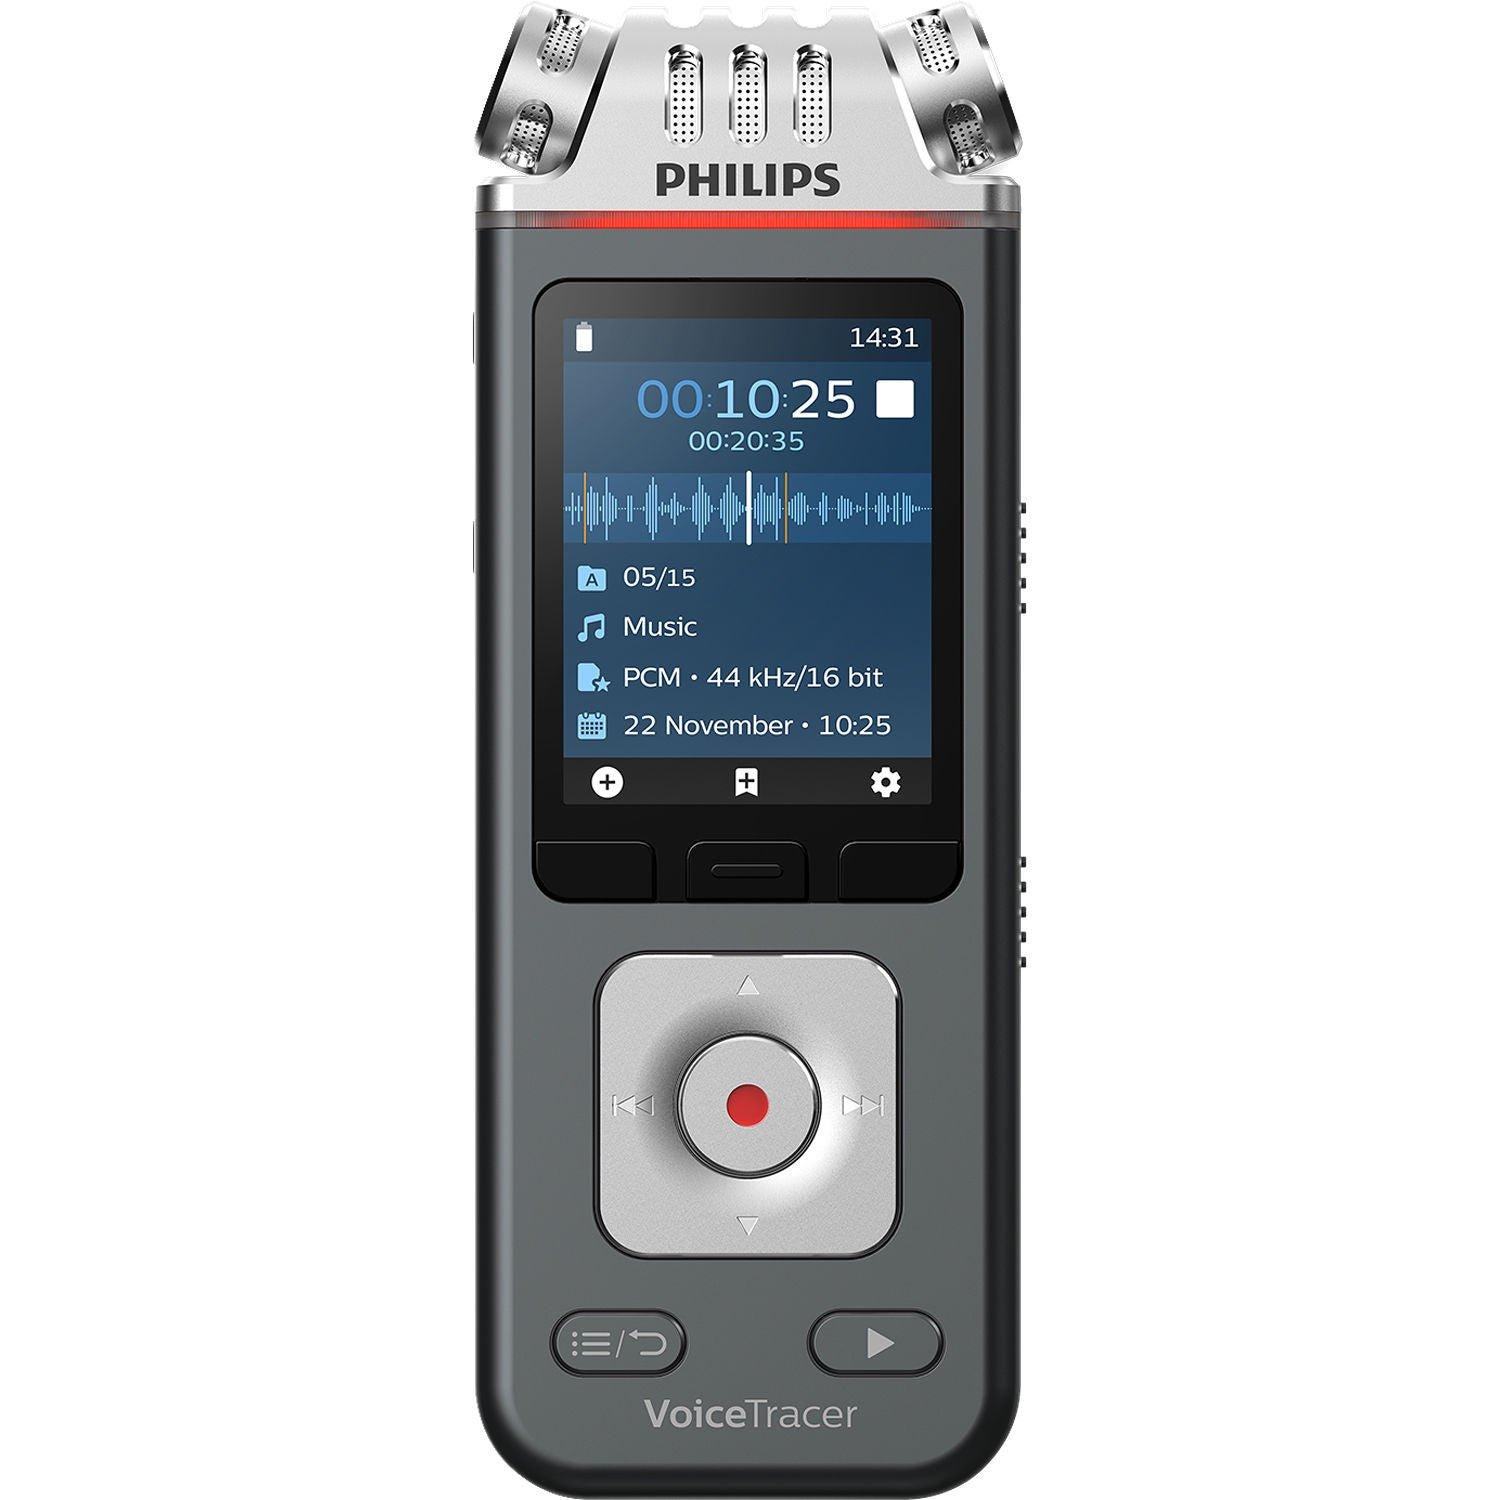 Philips DVT6110 for Music, Lectures and Interviews